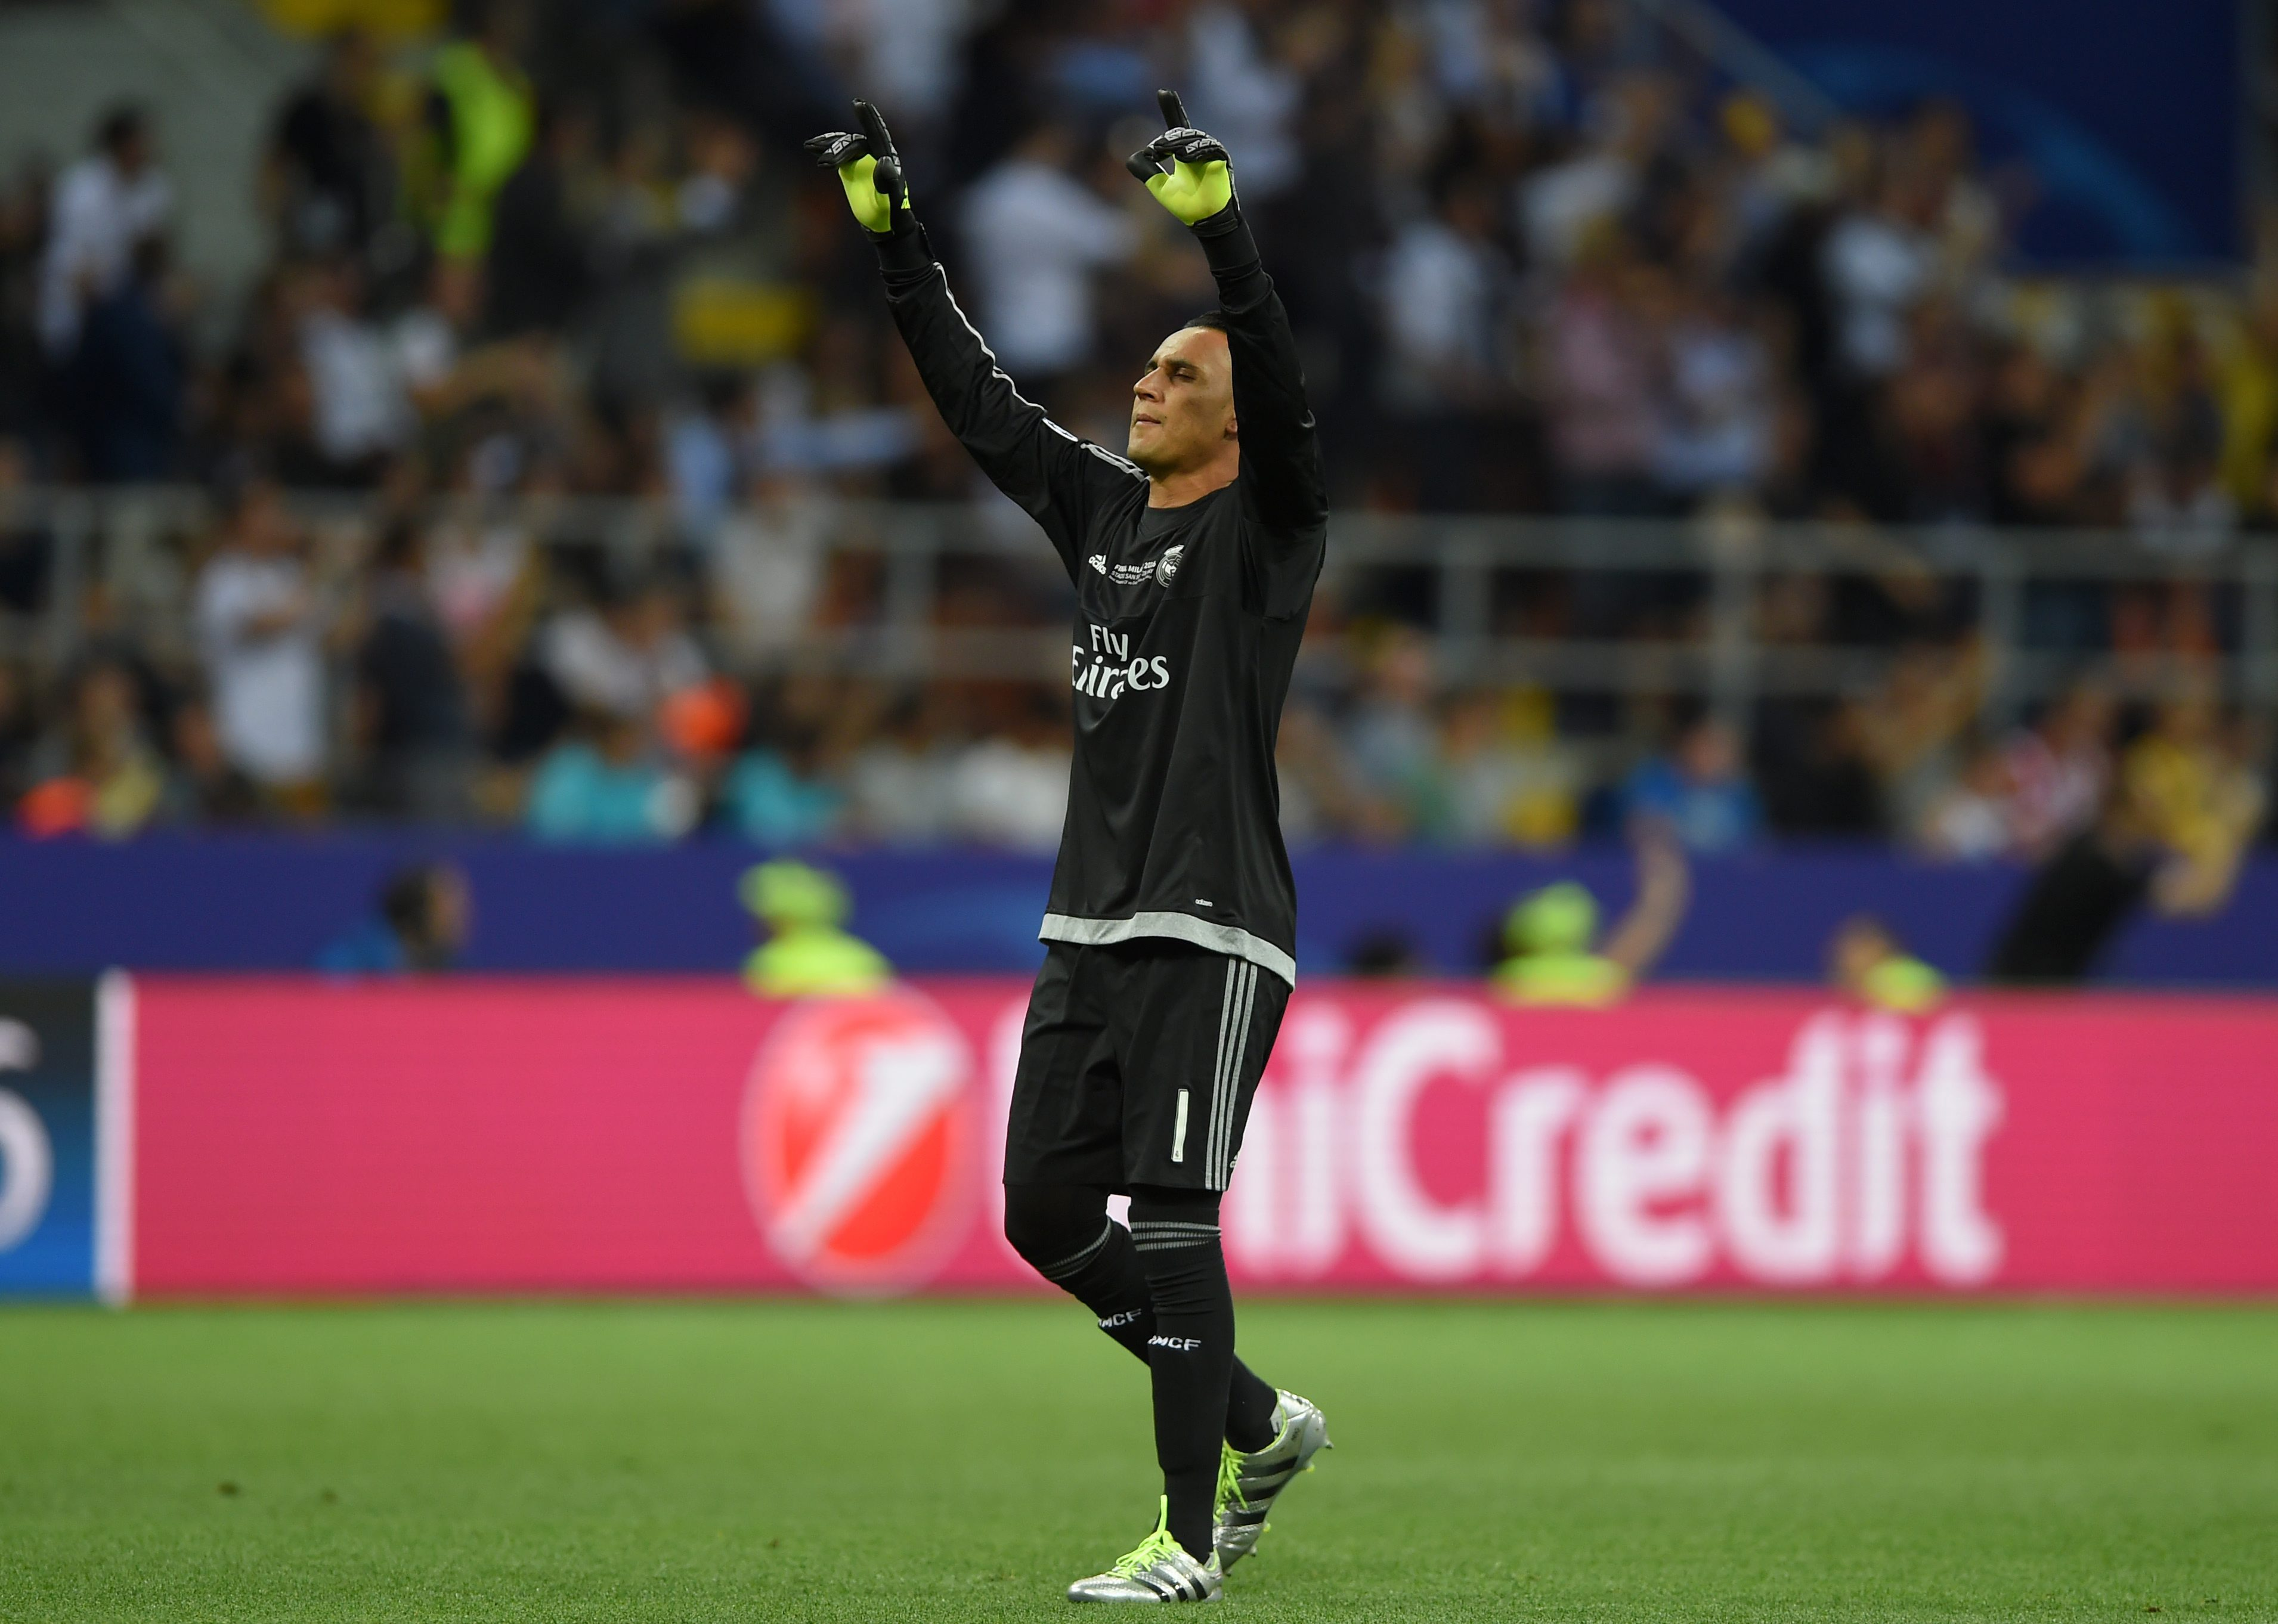 . Milan (Italy), 28/05/2016.- Real Madrid goalkeeper Keylor Navas celebrates their 1-0 goal during the UEFA Champions League Final between Real Madrid and Atletico Madrid at the Giuseppe Meazza stadium in Milan, Italy, 28 May 2016. (Liga de Campeones, Italia) EFE/EPA/PETER POWELL